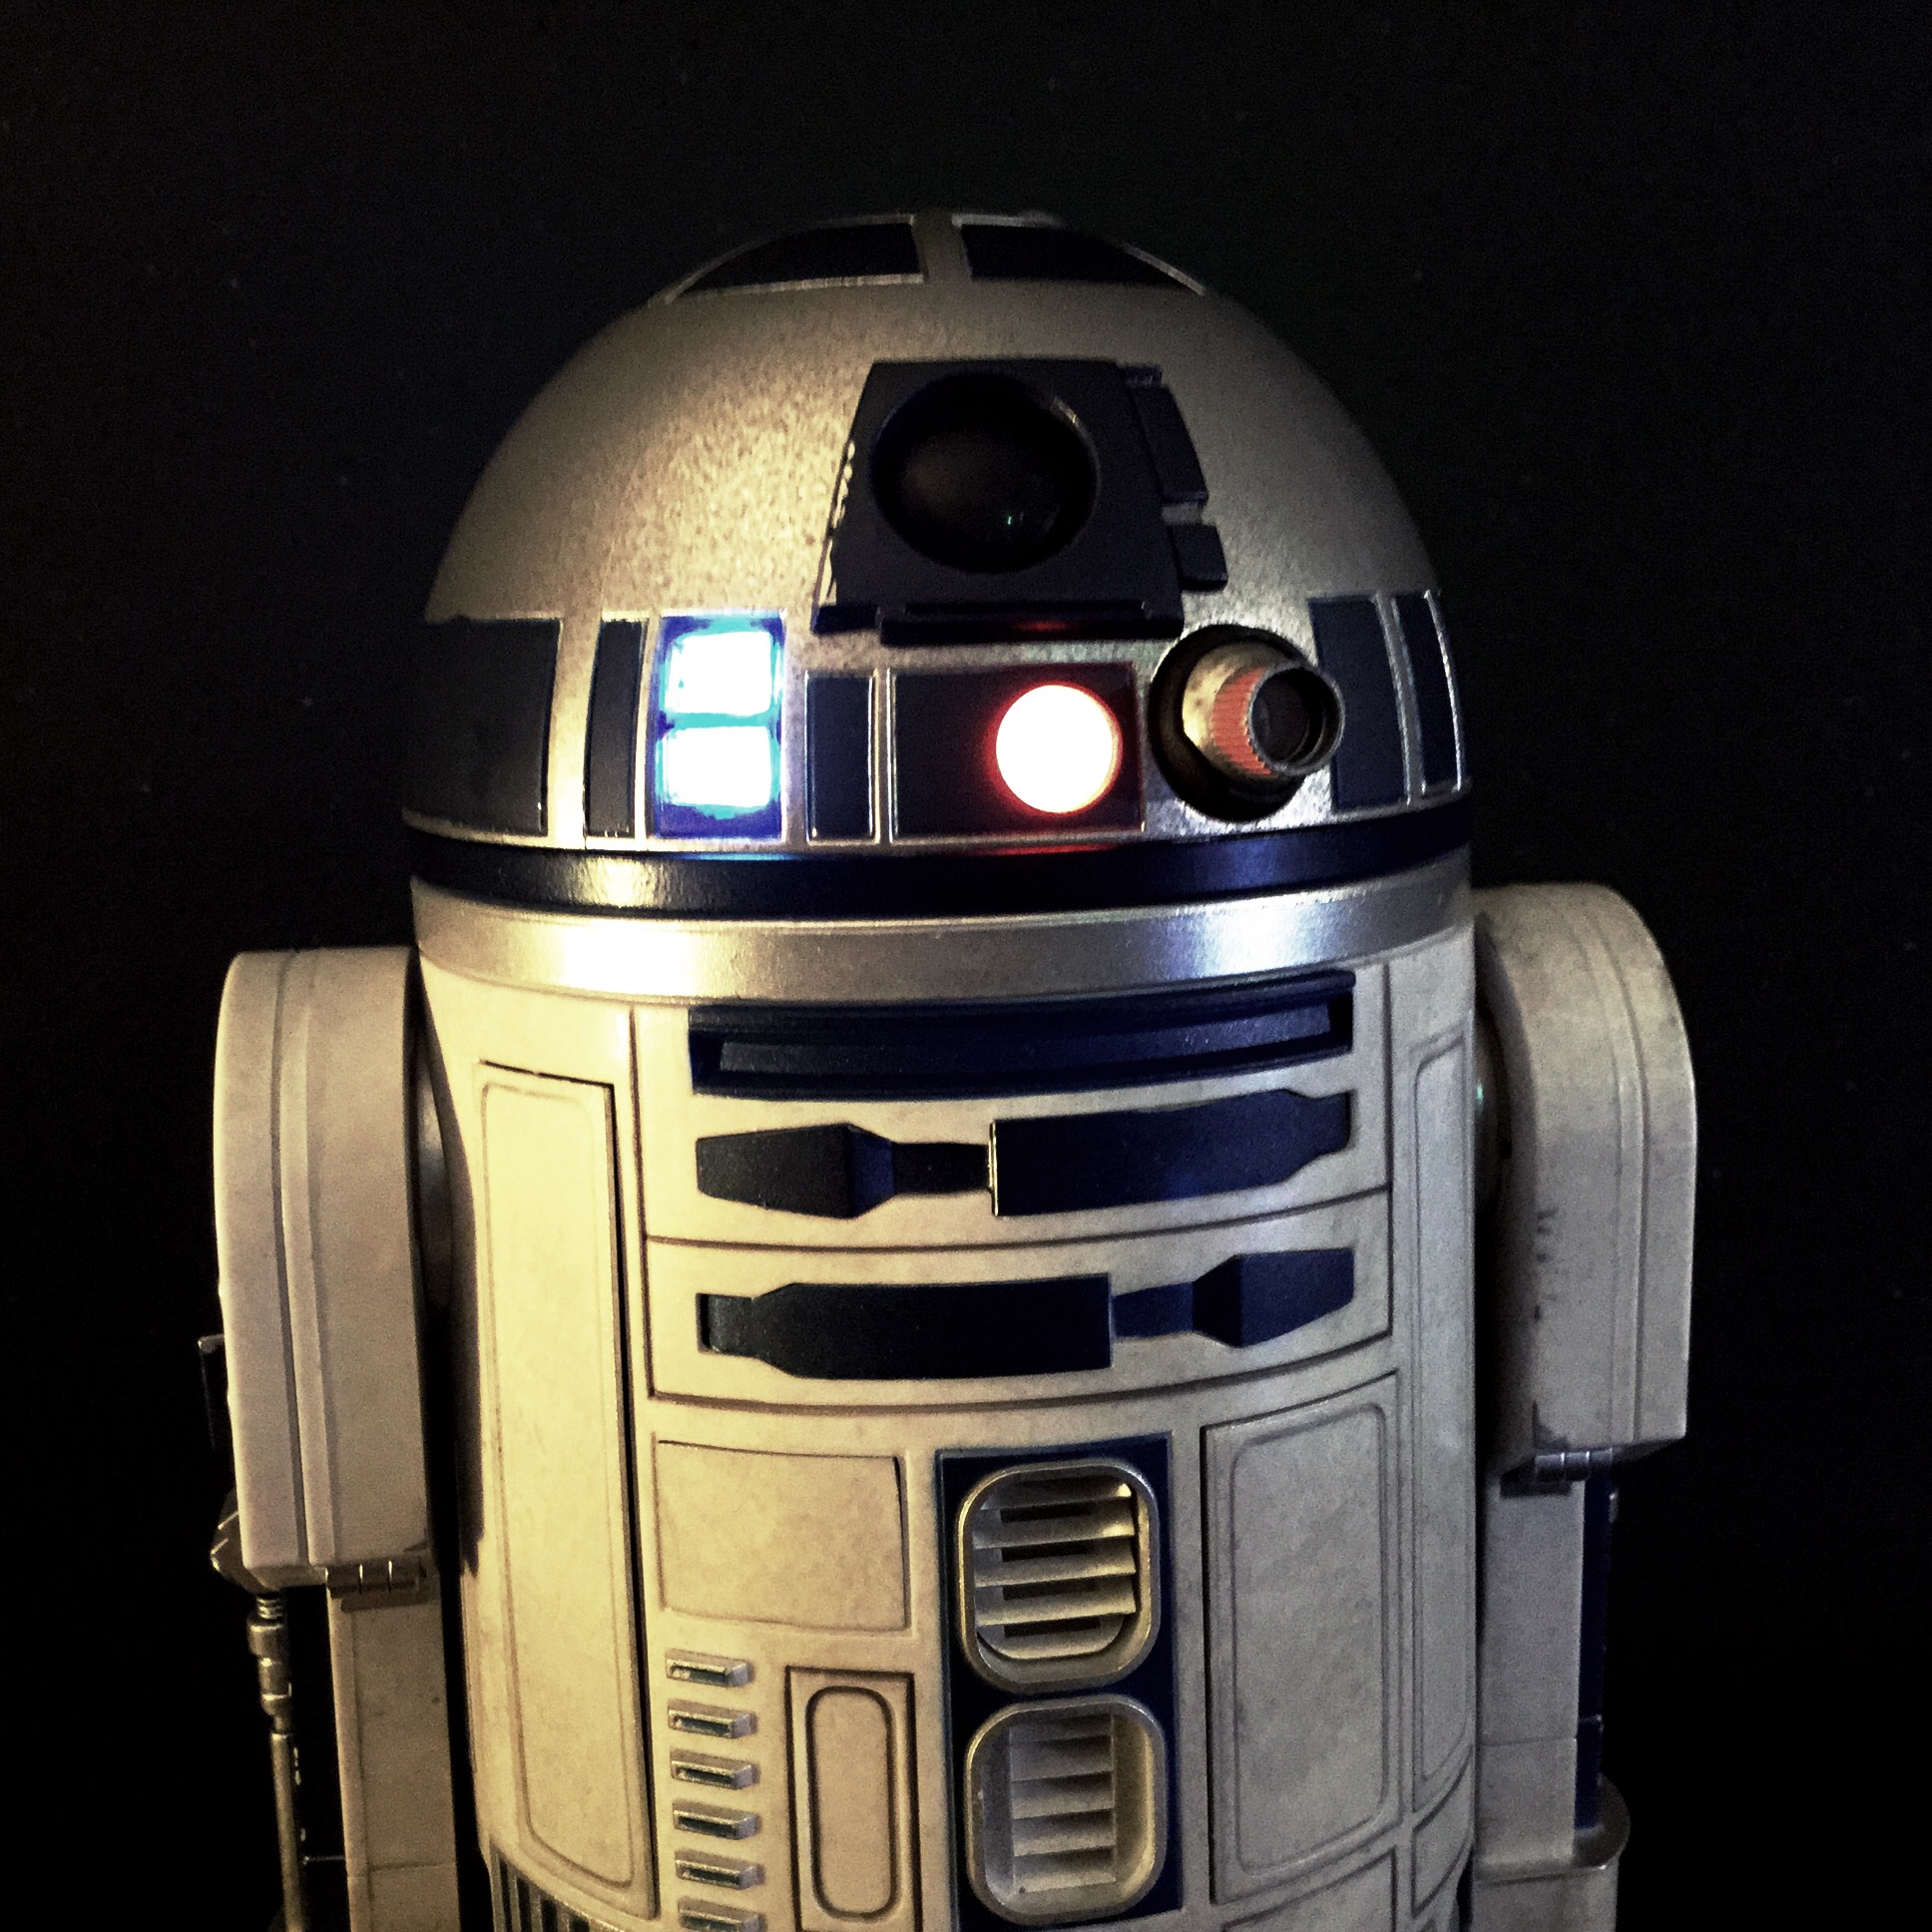 [REVIEW] Star Wars : R2-D2 Deluxe (Sideshow) 16256469168_e9748392f6_o